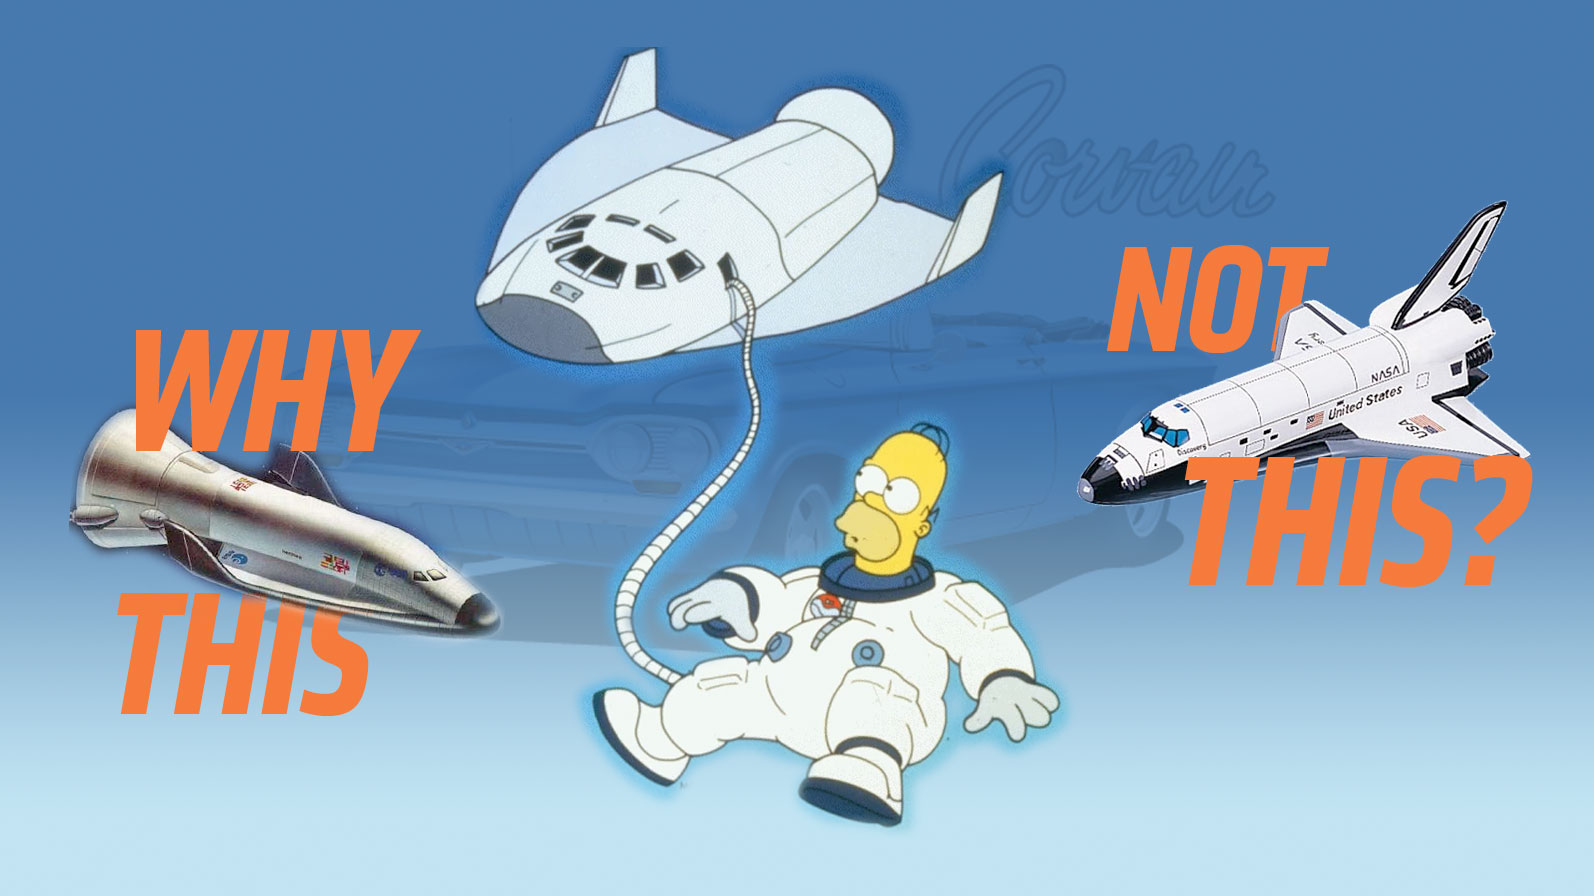 Space memorabilia spotted on The Simpsons - collectSPACE ...